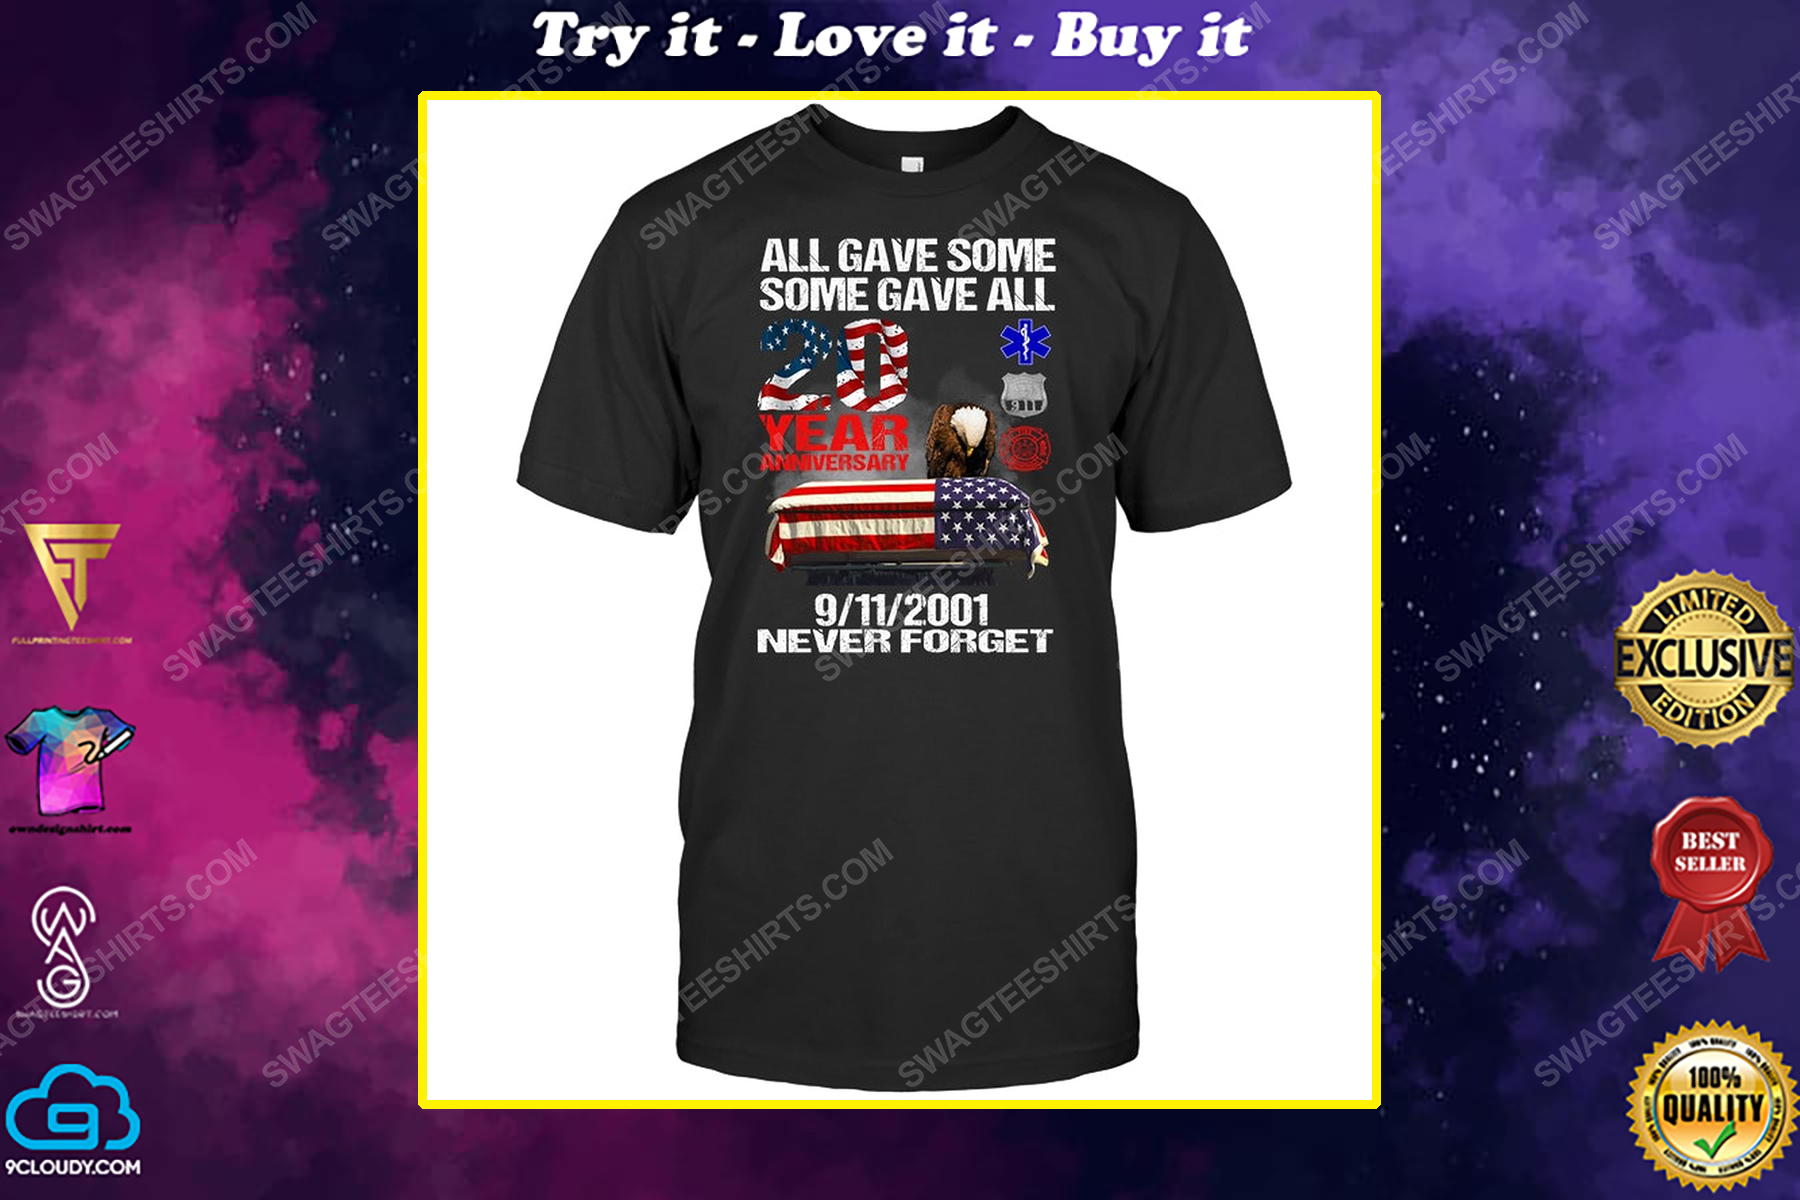 All gave some some gave all 20 year anniversary 9 2001 never forget political shirt